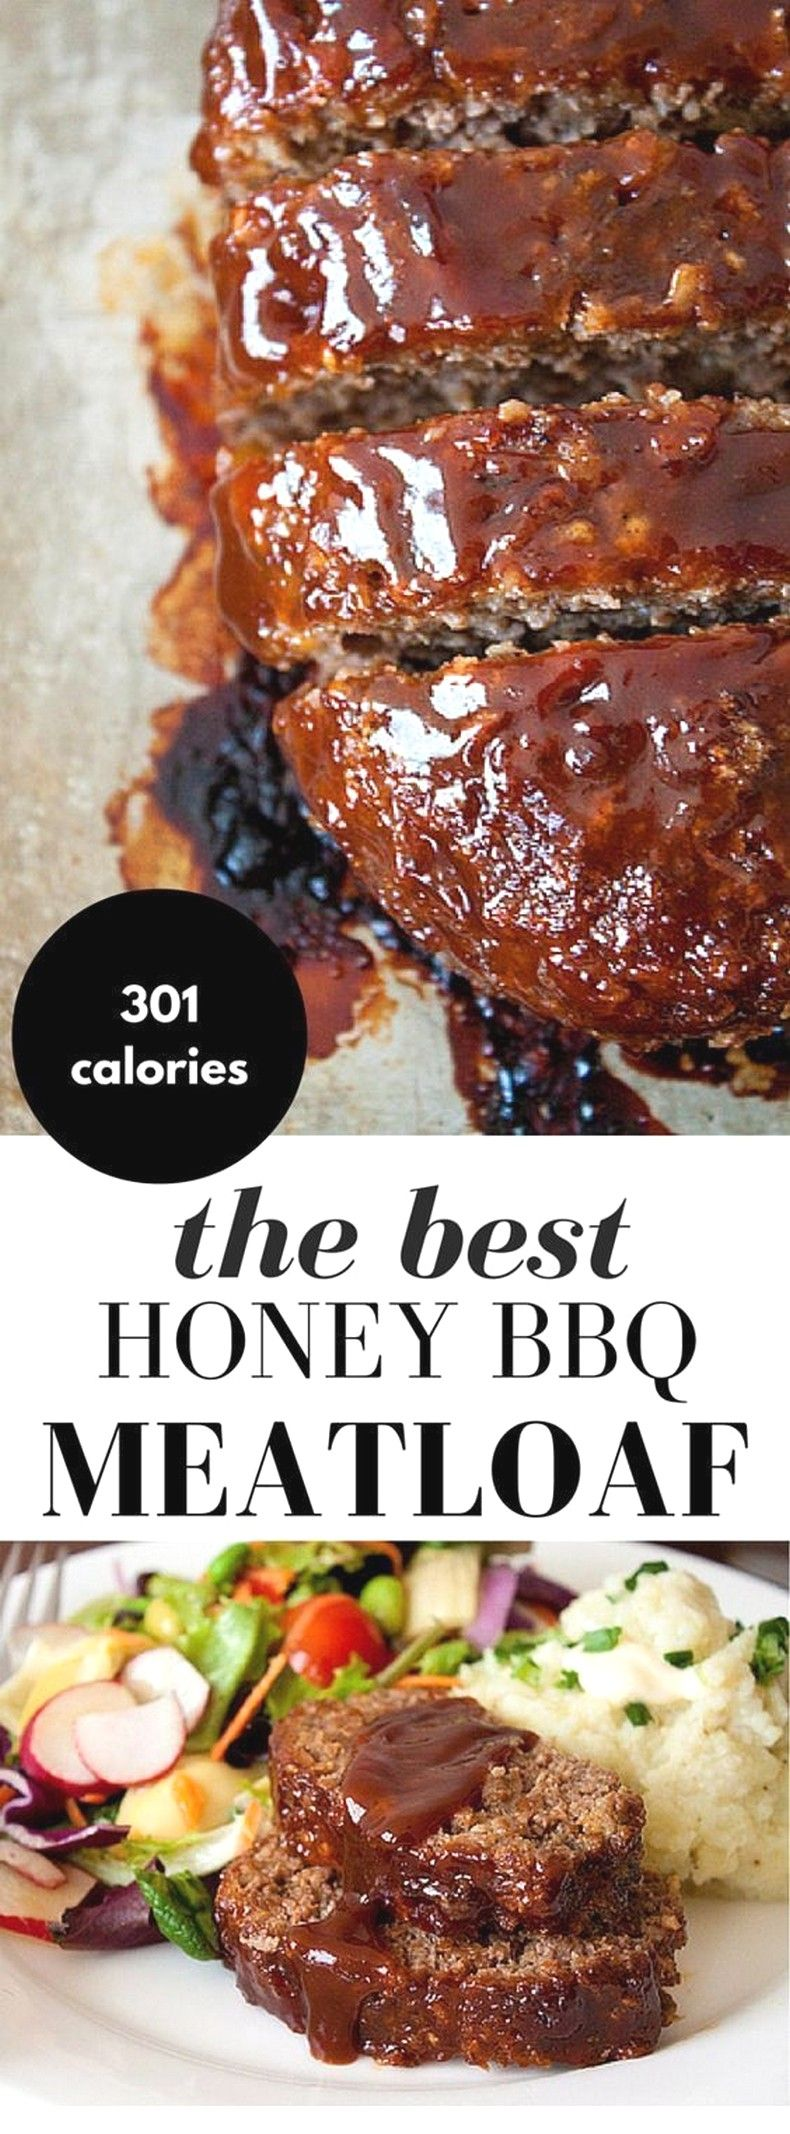 Beef Recipes Ideas | Honey Barbecue Meatloaf Recipe images